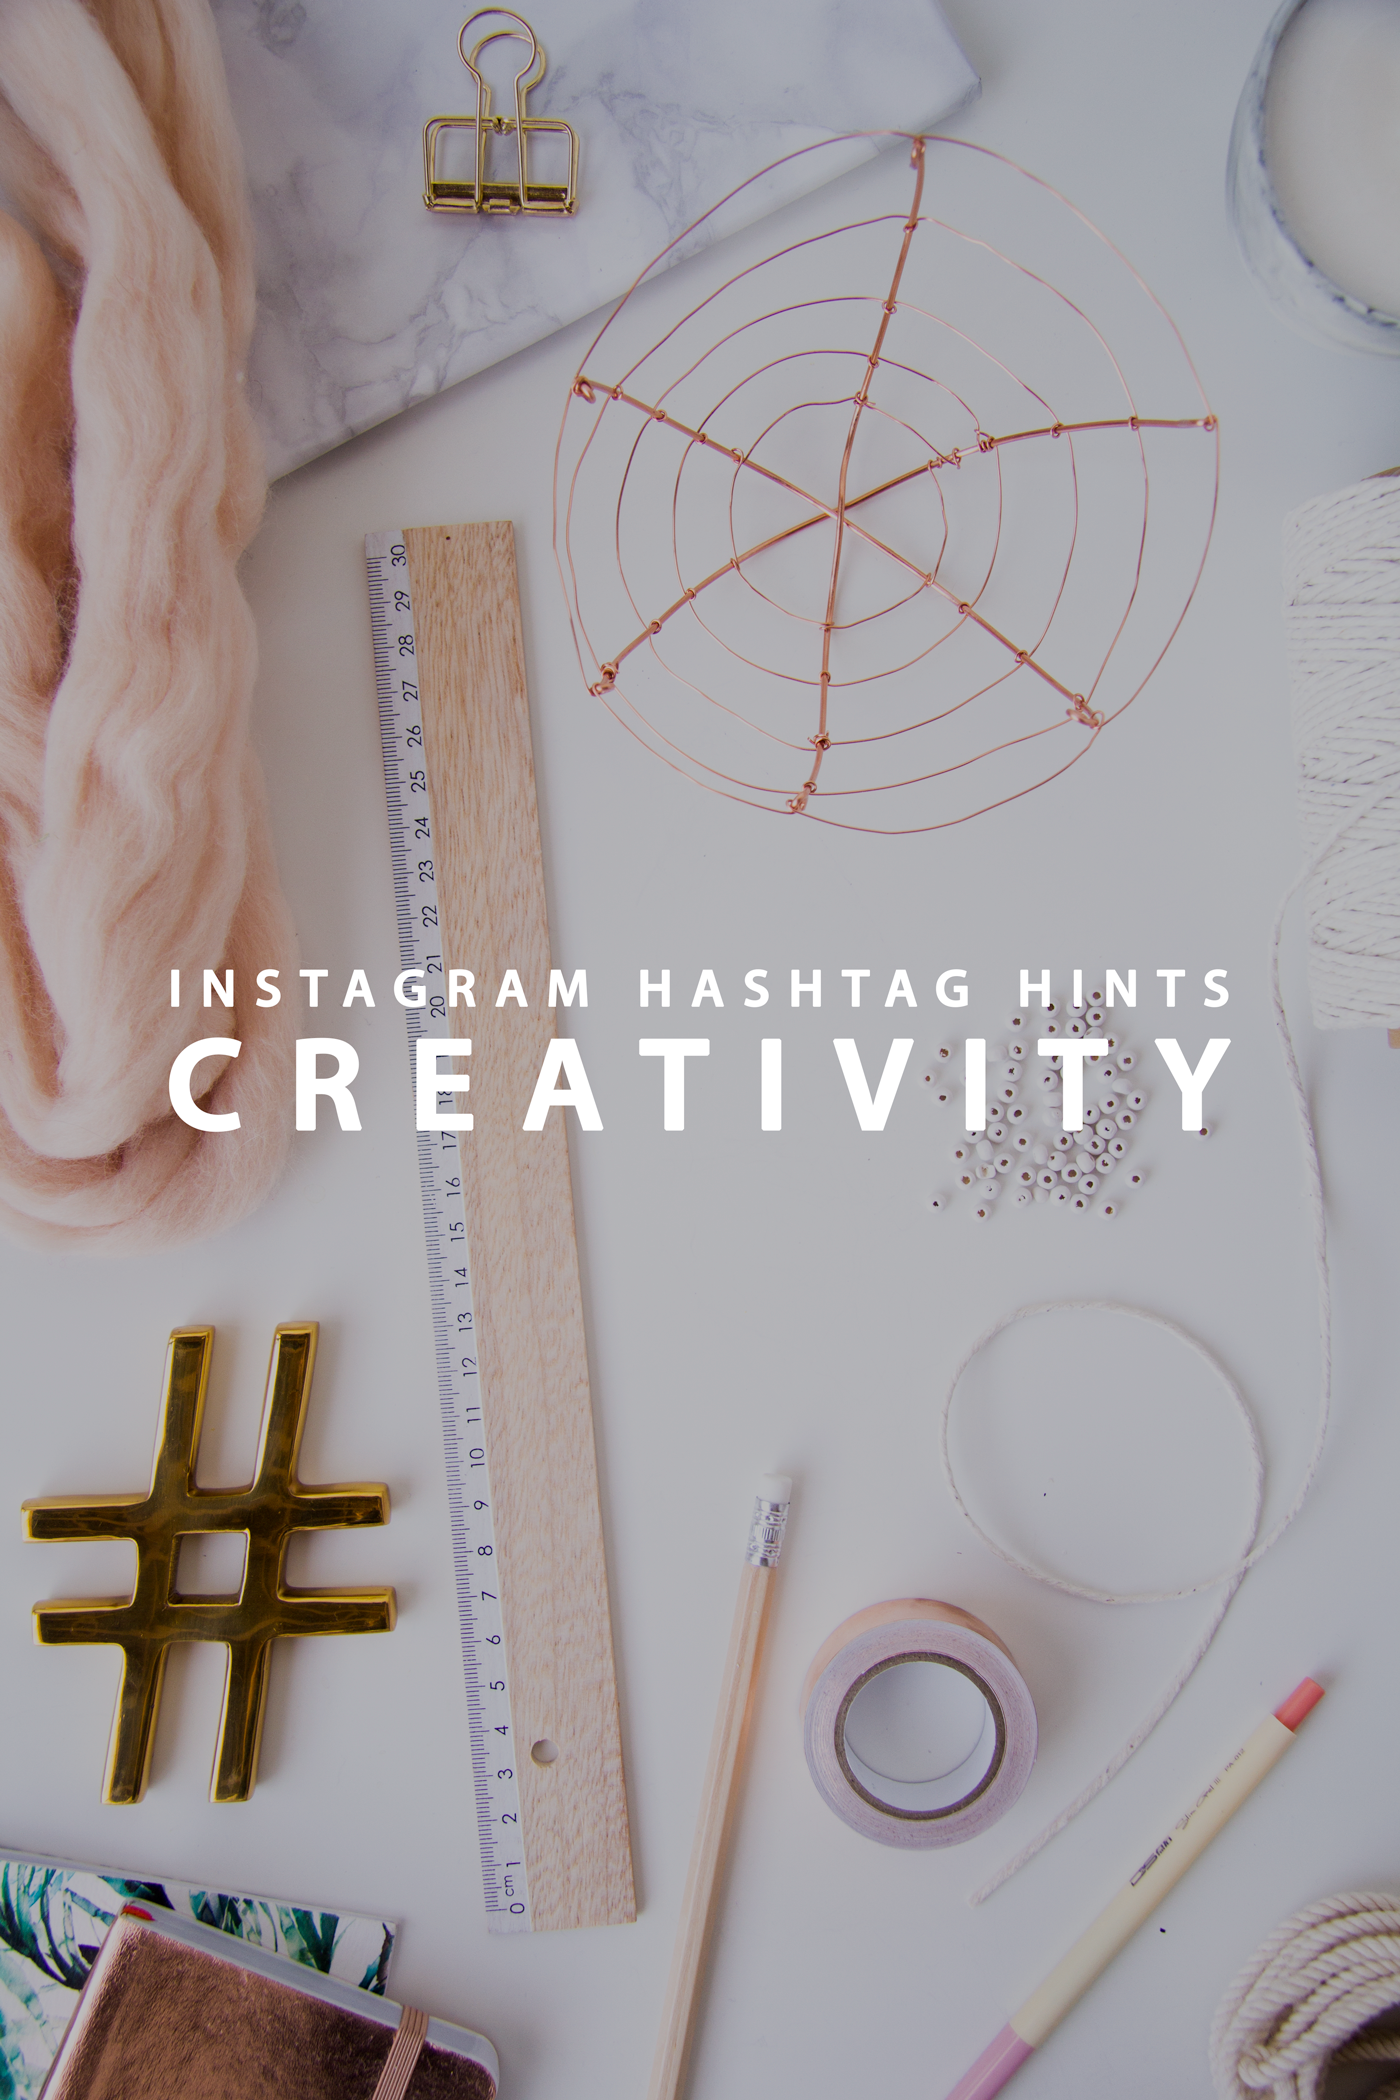 Instagram Hashtag Hints: Creativity